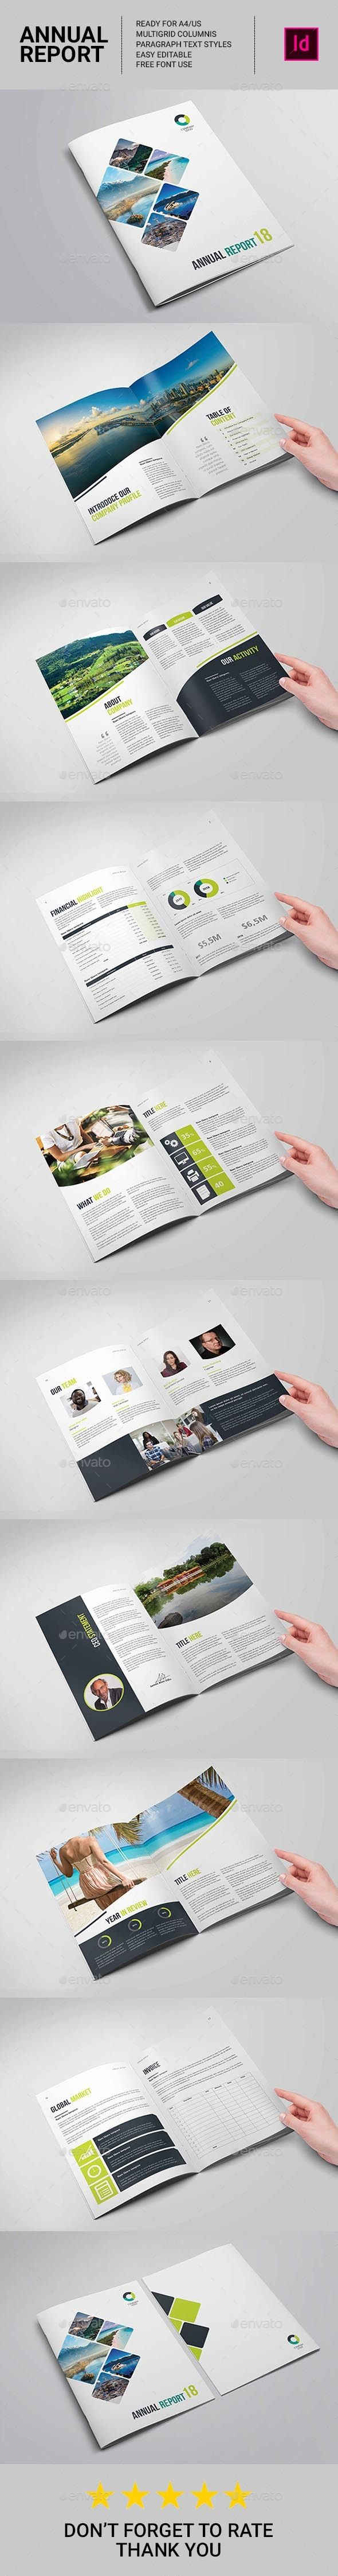 Annual Report and Company Profile TemplateThe Annual Report template is perfect for the publication of professional annual reports. Contains financial details with graphics for visual results.FILES INCLUDEDAdobe InDesign for CS4, CS5, CS6, CC, CC2015 and abo